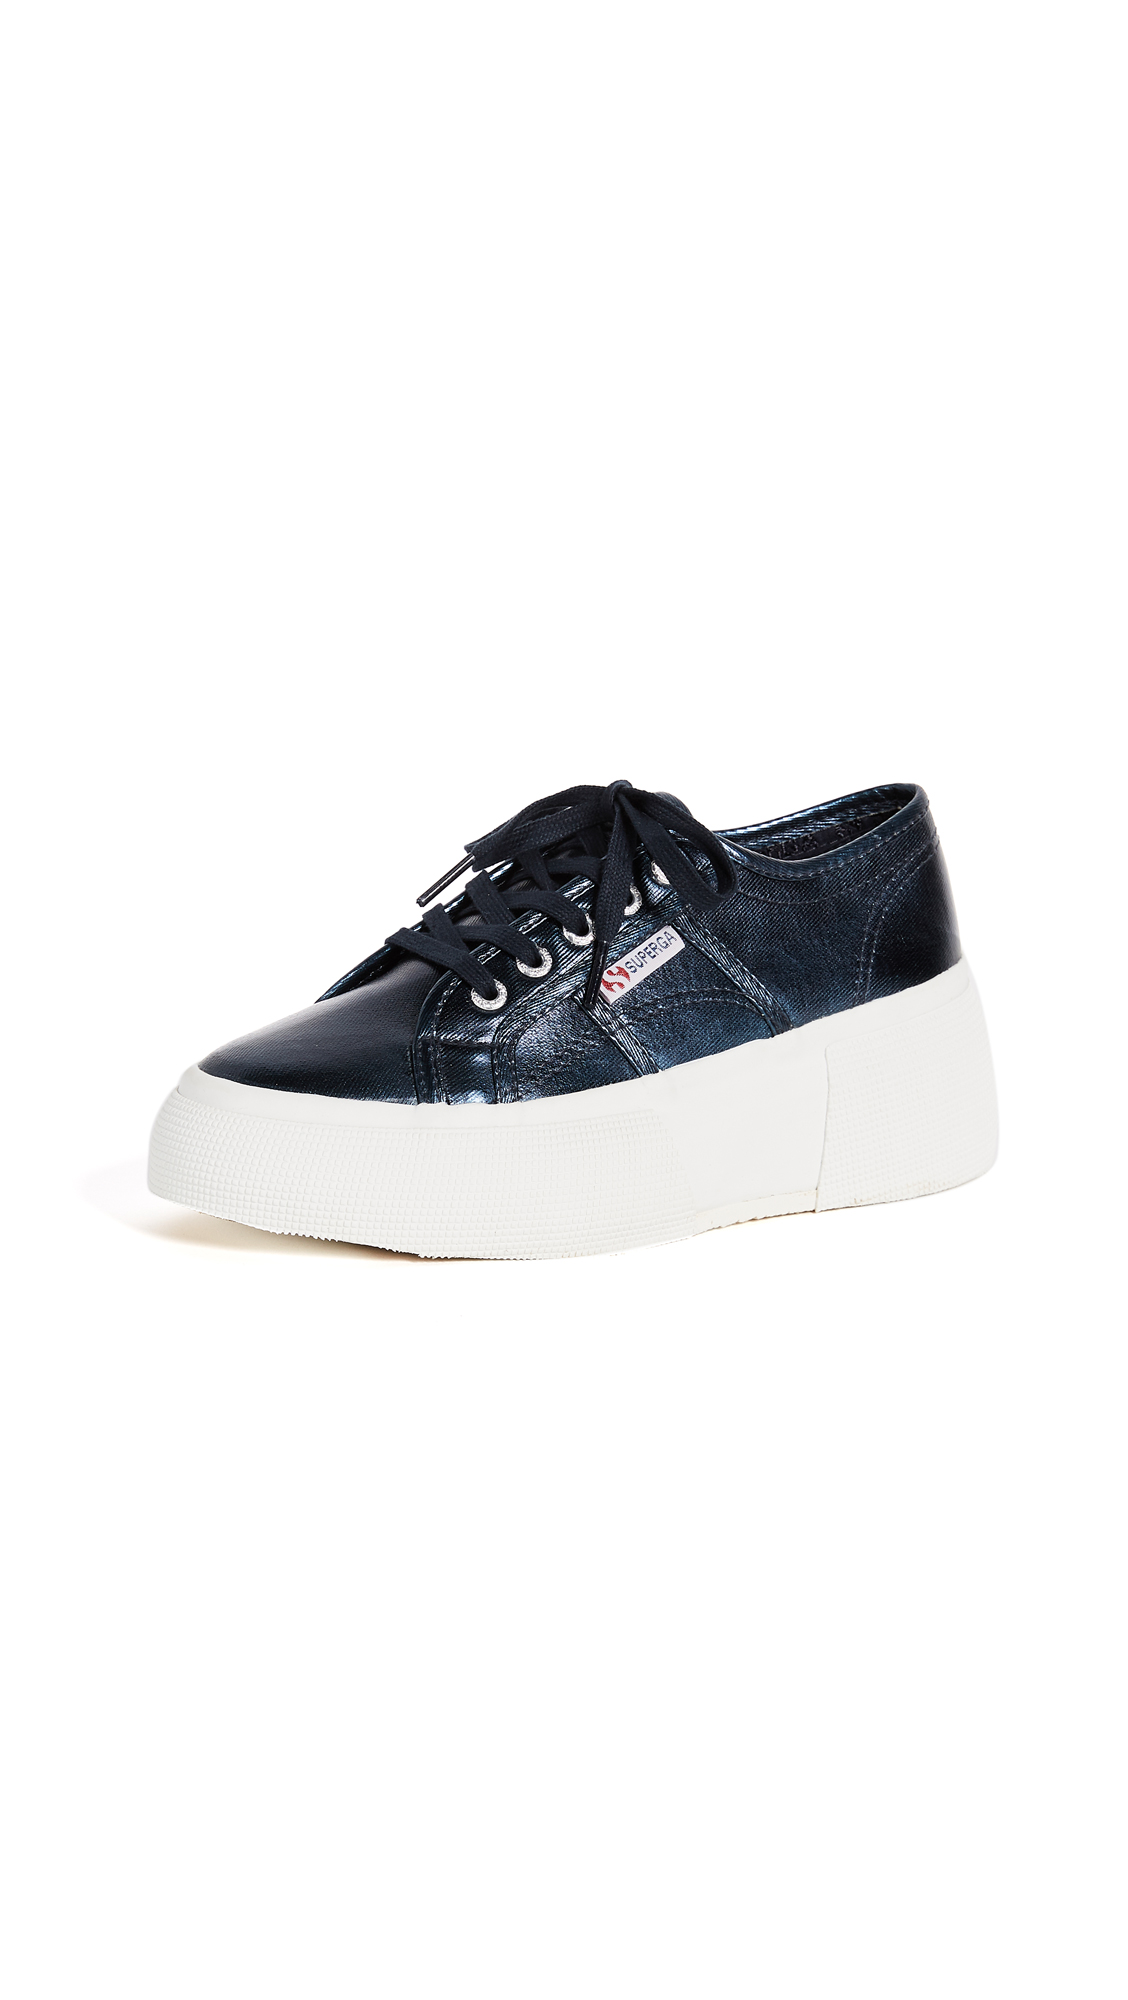 Superga 2287 Metallic Platform Sneakers - Blue